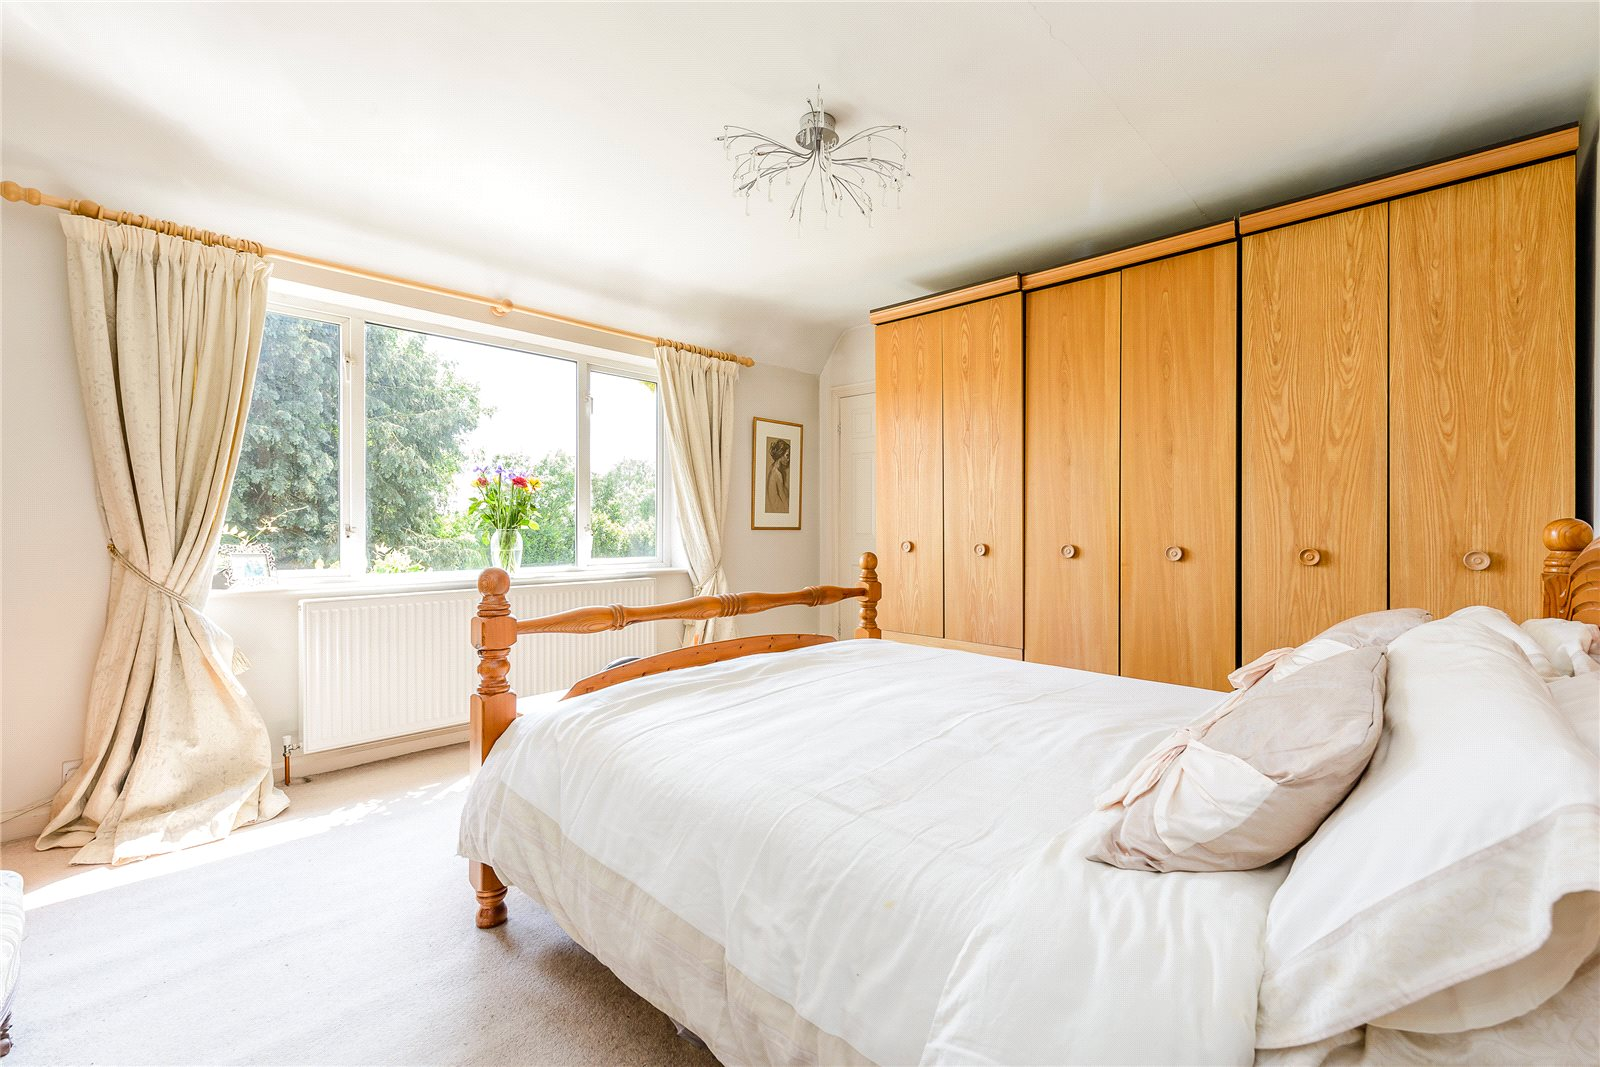 Additional photo for property listing at Fulmer Lane, Fulmer, Buckinghamshire, SL3 Fulmer, Angleterre